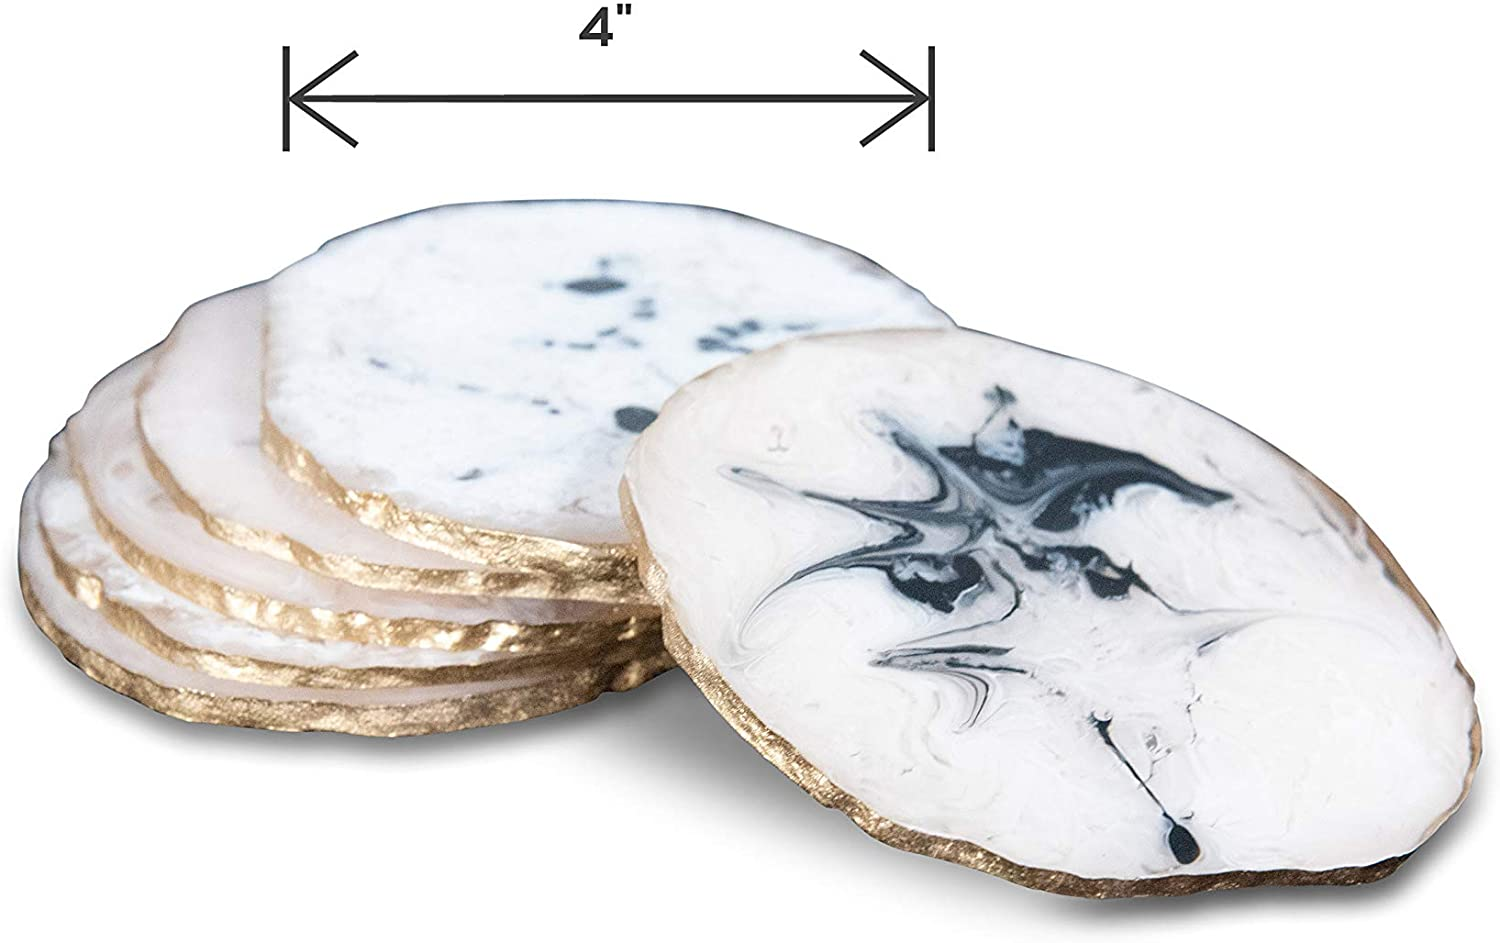 Dusto Resin Round Ivory Coaster (DH9001) | Resin Coaster for cups | Coasters for Dining Table | Unique Coasters for glass, cups, table | Dining Table Coaster Set of 6 Pcs. (WHITE).